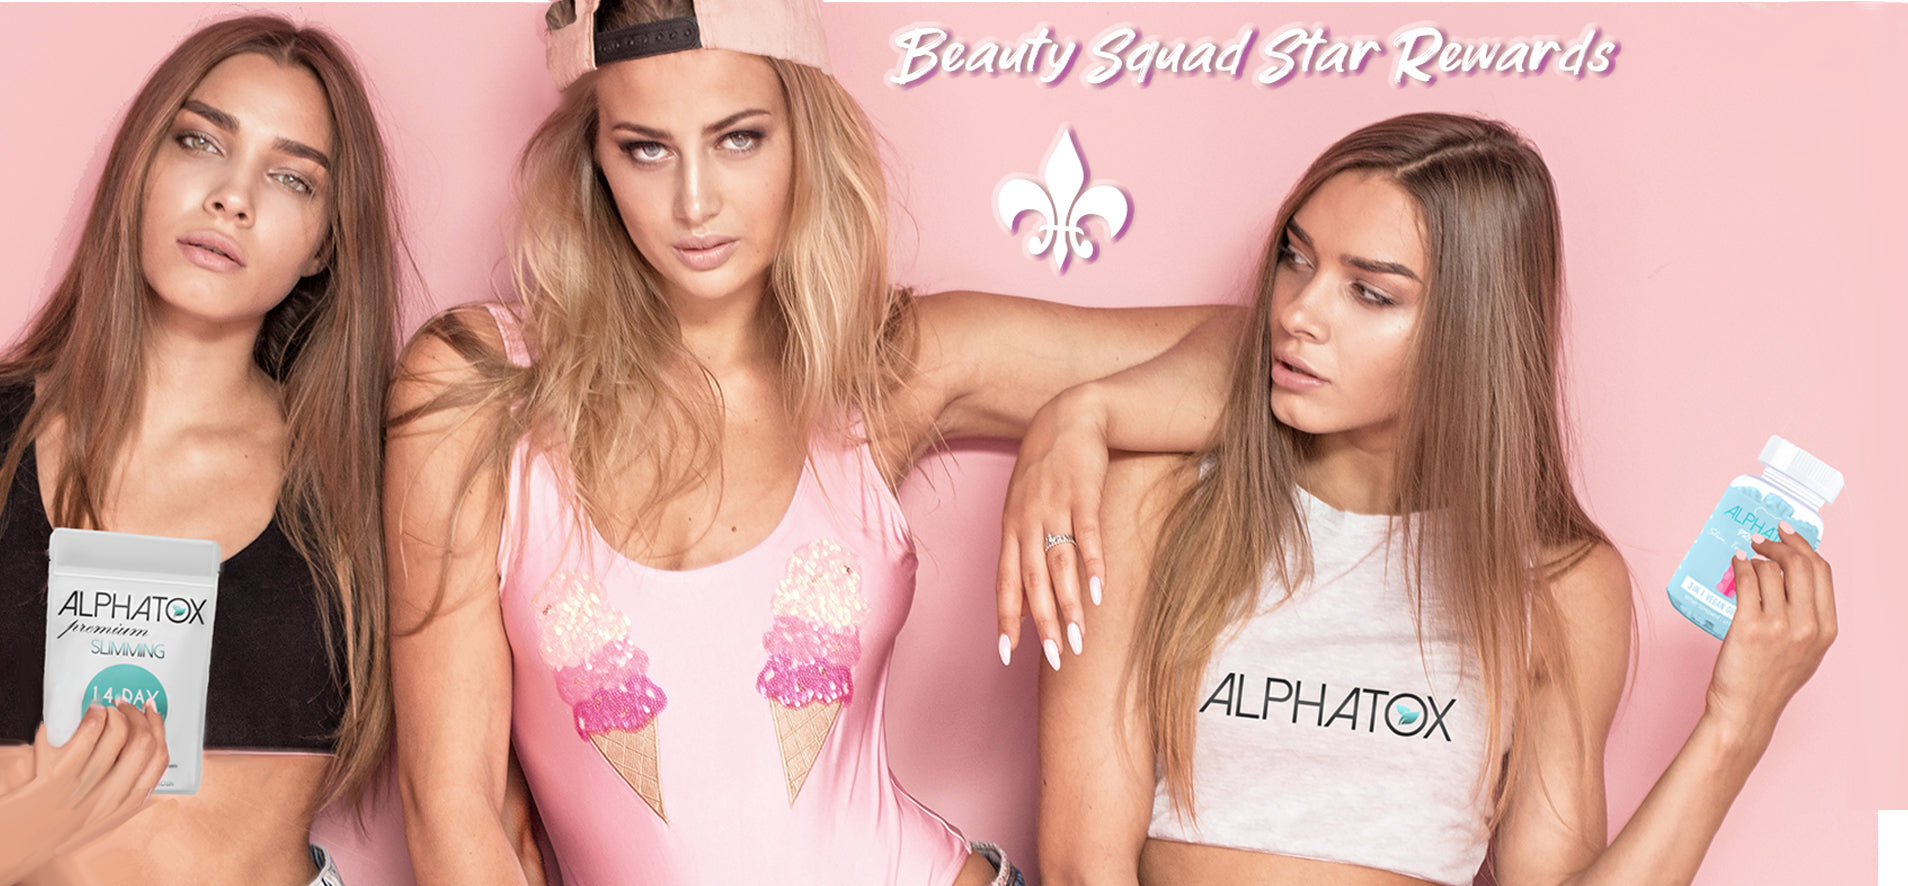 Join The Alphatox Glam Squad! Join VIP Star Rewards Today! It's Free, You Earn to Shop, Share Alphatox via FB & Twitter, and IG! Redeemable for Alphatox Premium Flat Tummy Teas, Blends, Coffee, and Gummy Bears! Daily Deals ass Well! Try The #1 Weight Loss Slimming All Natural Products Online Today & Earn While Doing So!